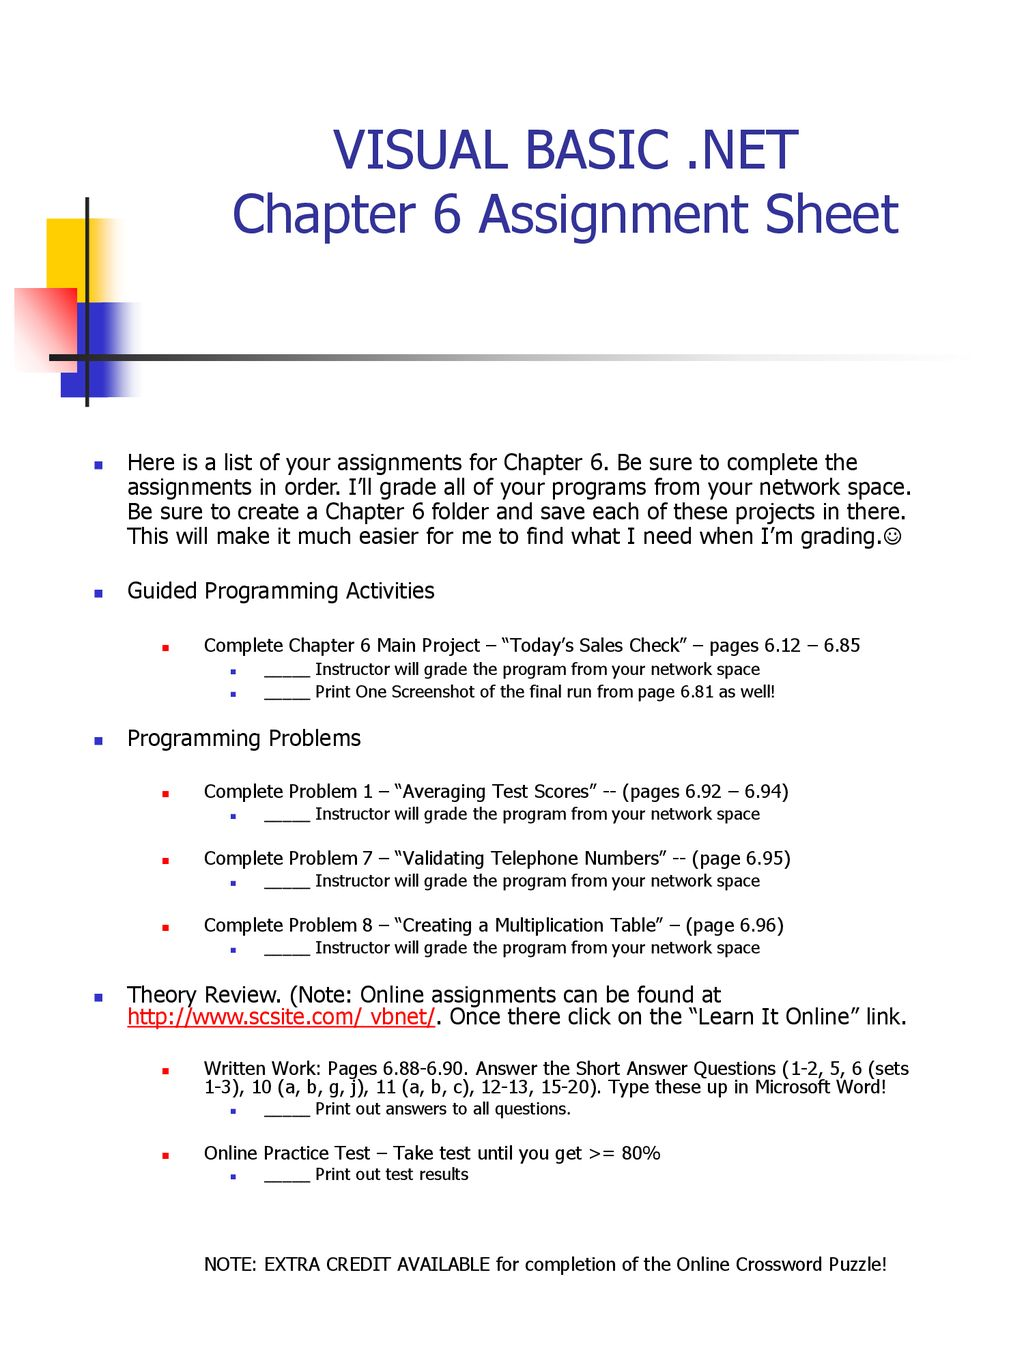 VISUAL BASIC  NET Chapter 6 Assignment Sheet - ppt download